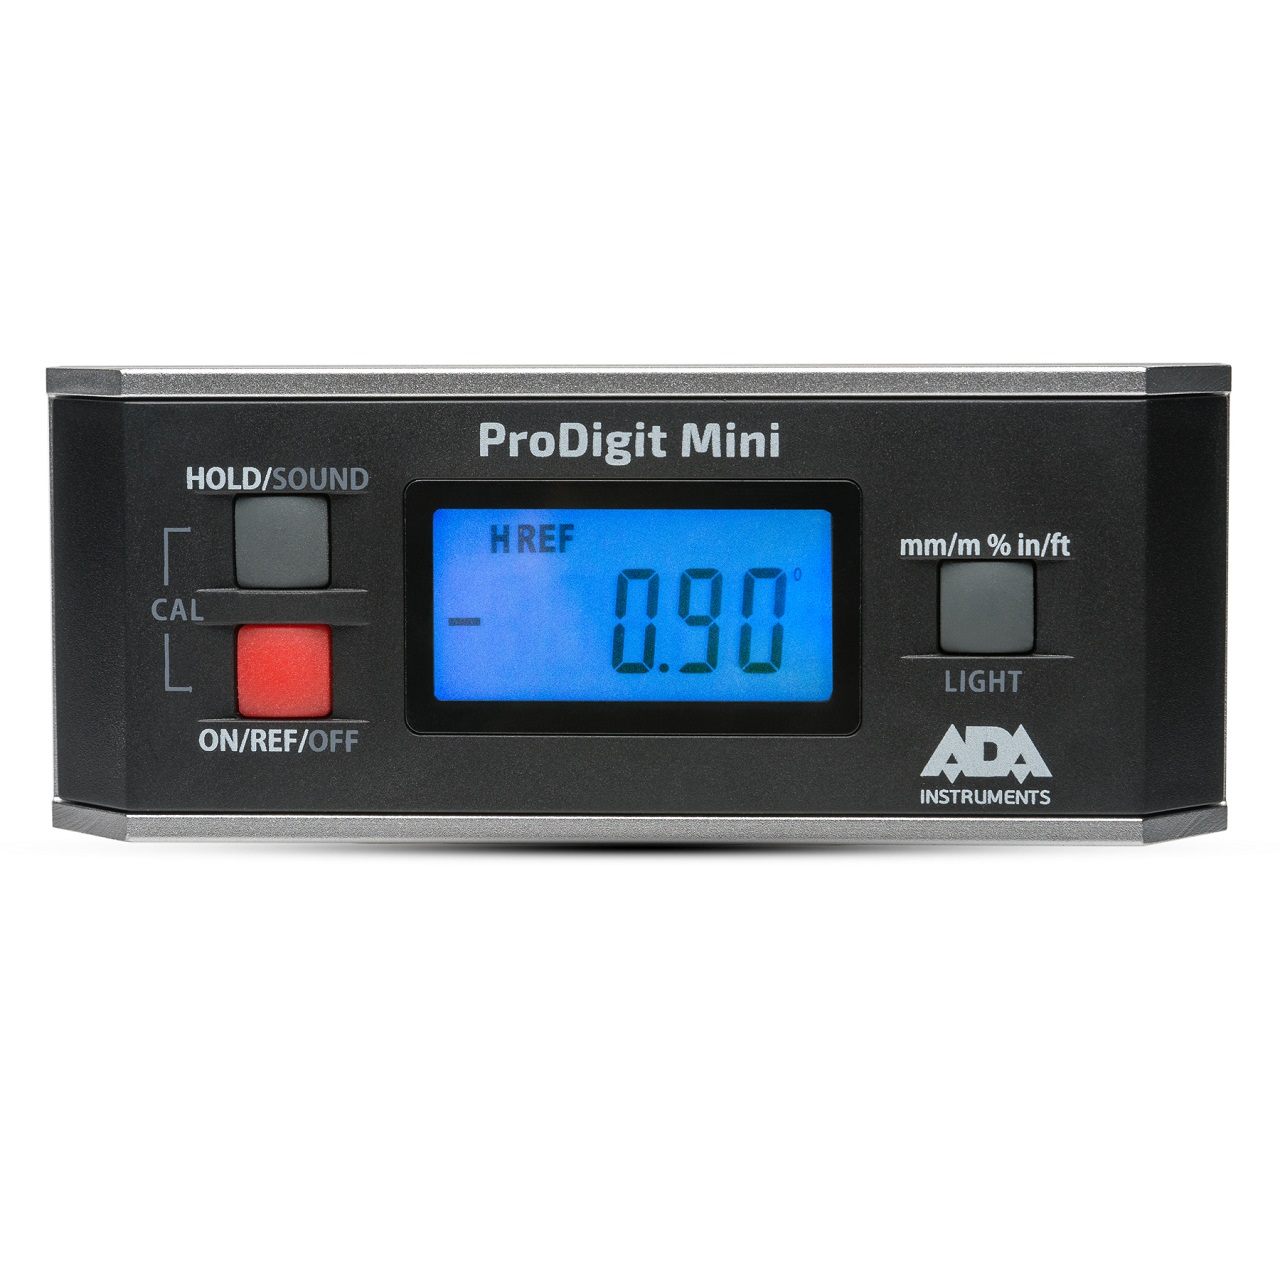 Electronic level ADA ProDigit Mini electronic level ada prodigit mini